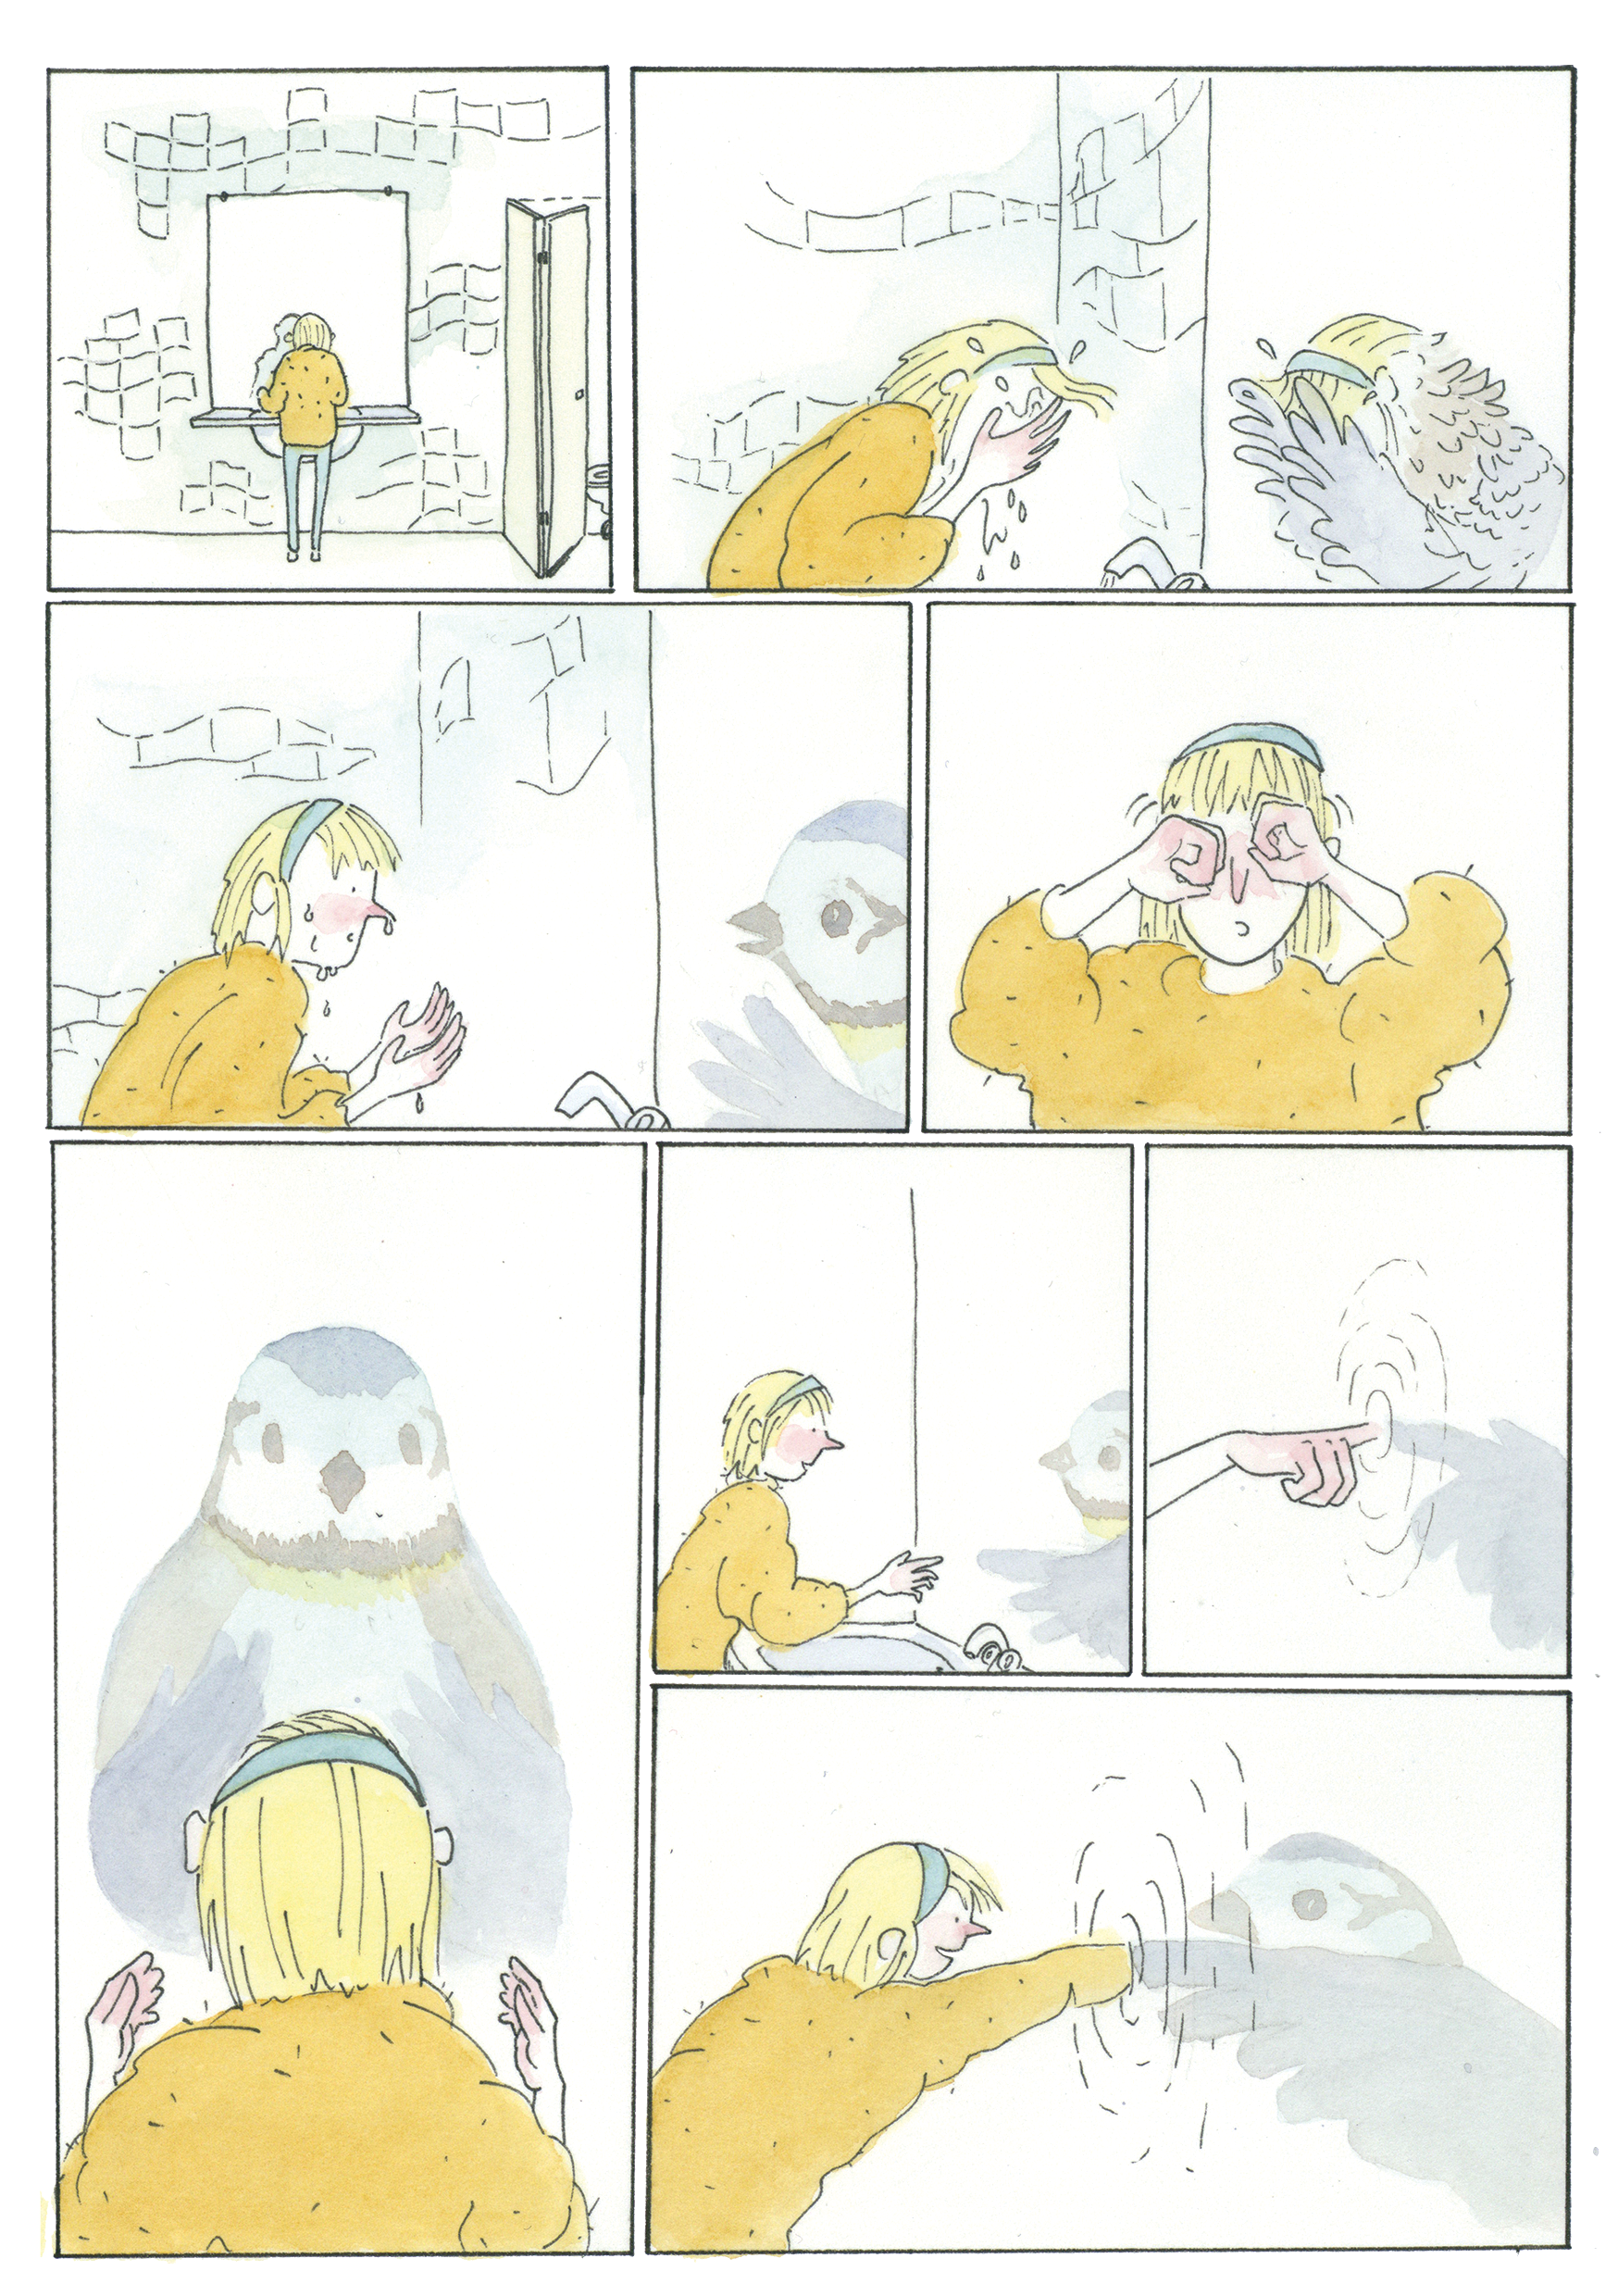 Mariell&Holly-page2.png